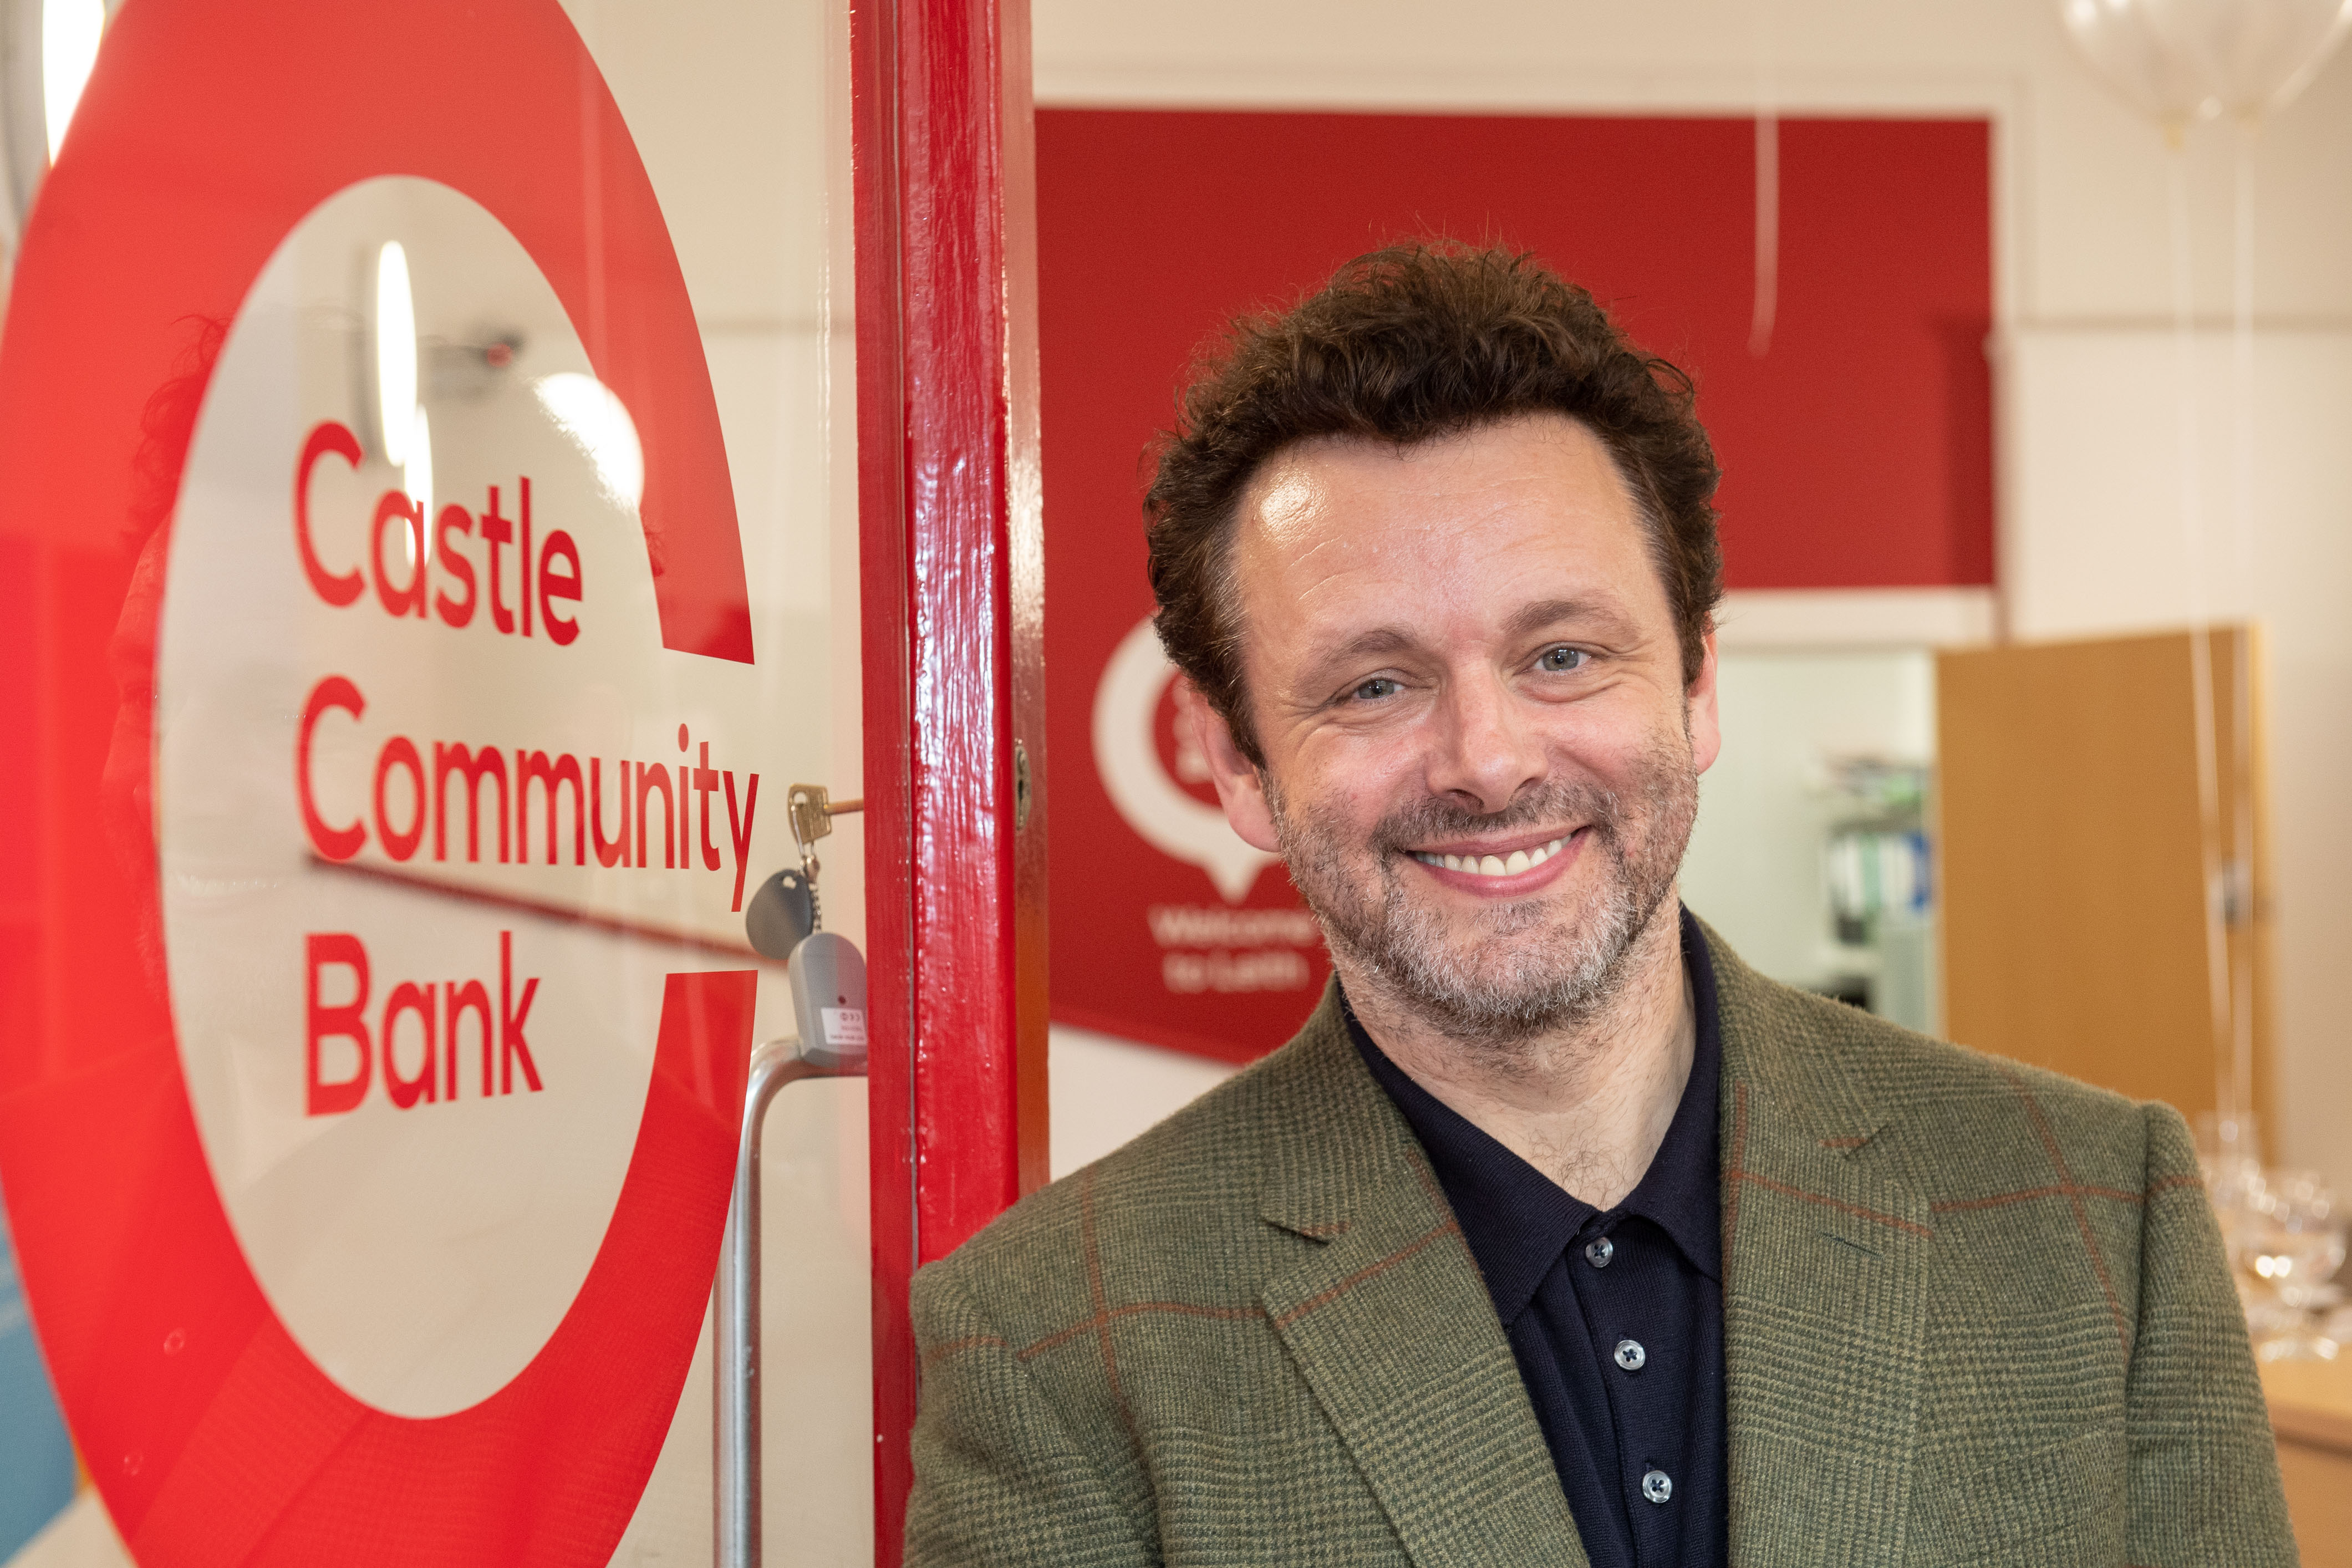 www.iangeorgesonphotography.co.uk Pictured Michael Sheen MOVIE star and social campaigner Michael Sheen is to open a new branch of a community bank in Edinburgh. The star – known for his roles in the Twilight series and as legendary football manager Brian Clough in The Damned United – is on a mission to expose the horrors of high-cost credit and lending. Now he has cleared time in his packed schedule to make an appearance in Leith to help promote the work of Castle Community Bank by officially opening its new branch in Great Junction Street. He will be joined by Angela Constance, Cabinet Secretary for Communities, Social Security and Equalities – as well as guest list including politicians and leading business figures. PR agency in Edinburgh